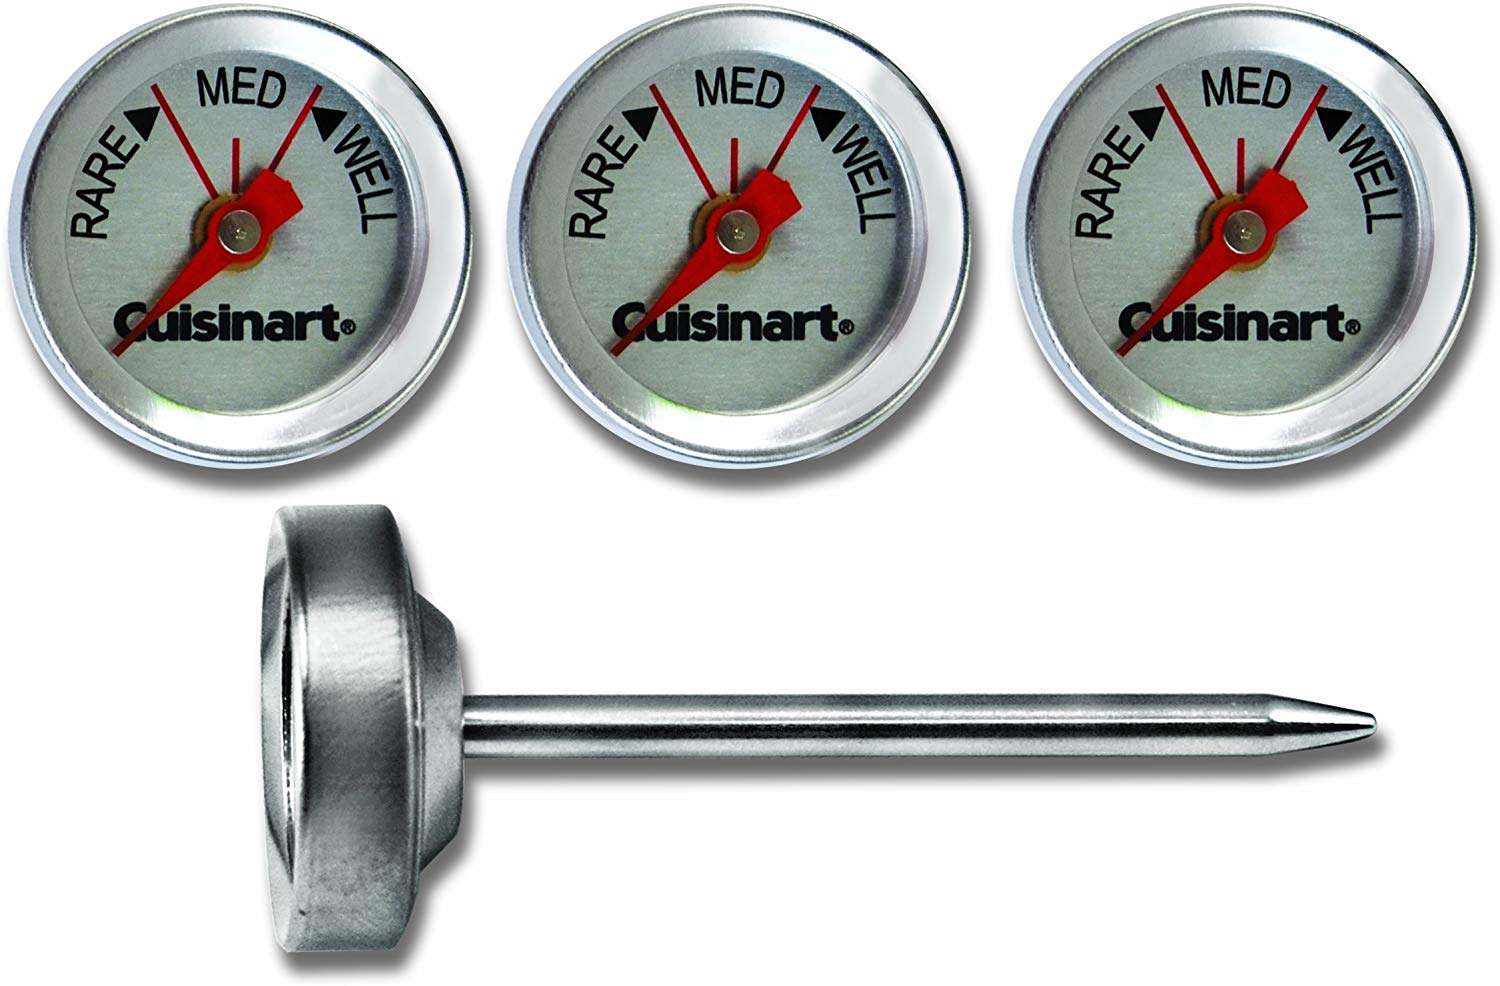 Cuisinart Steal Thermometers